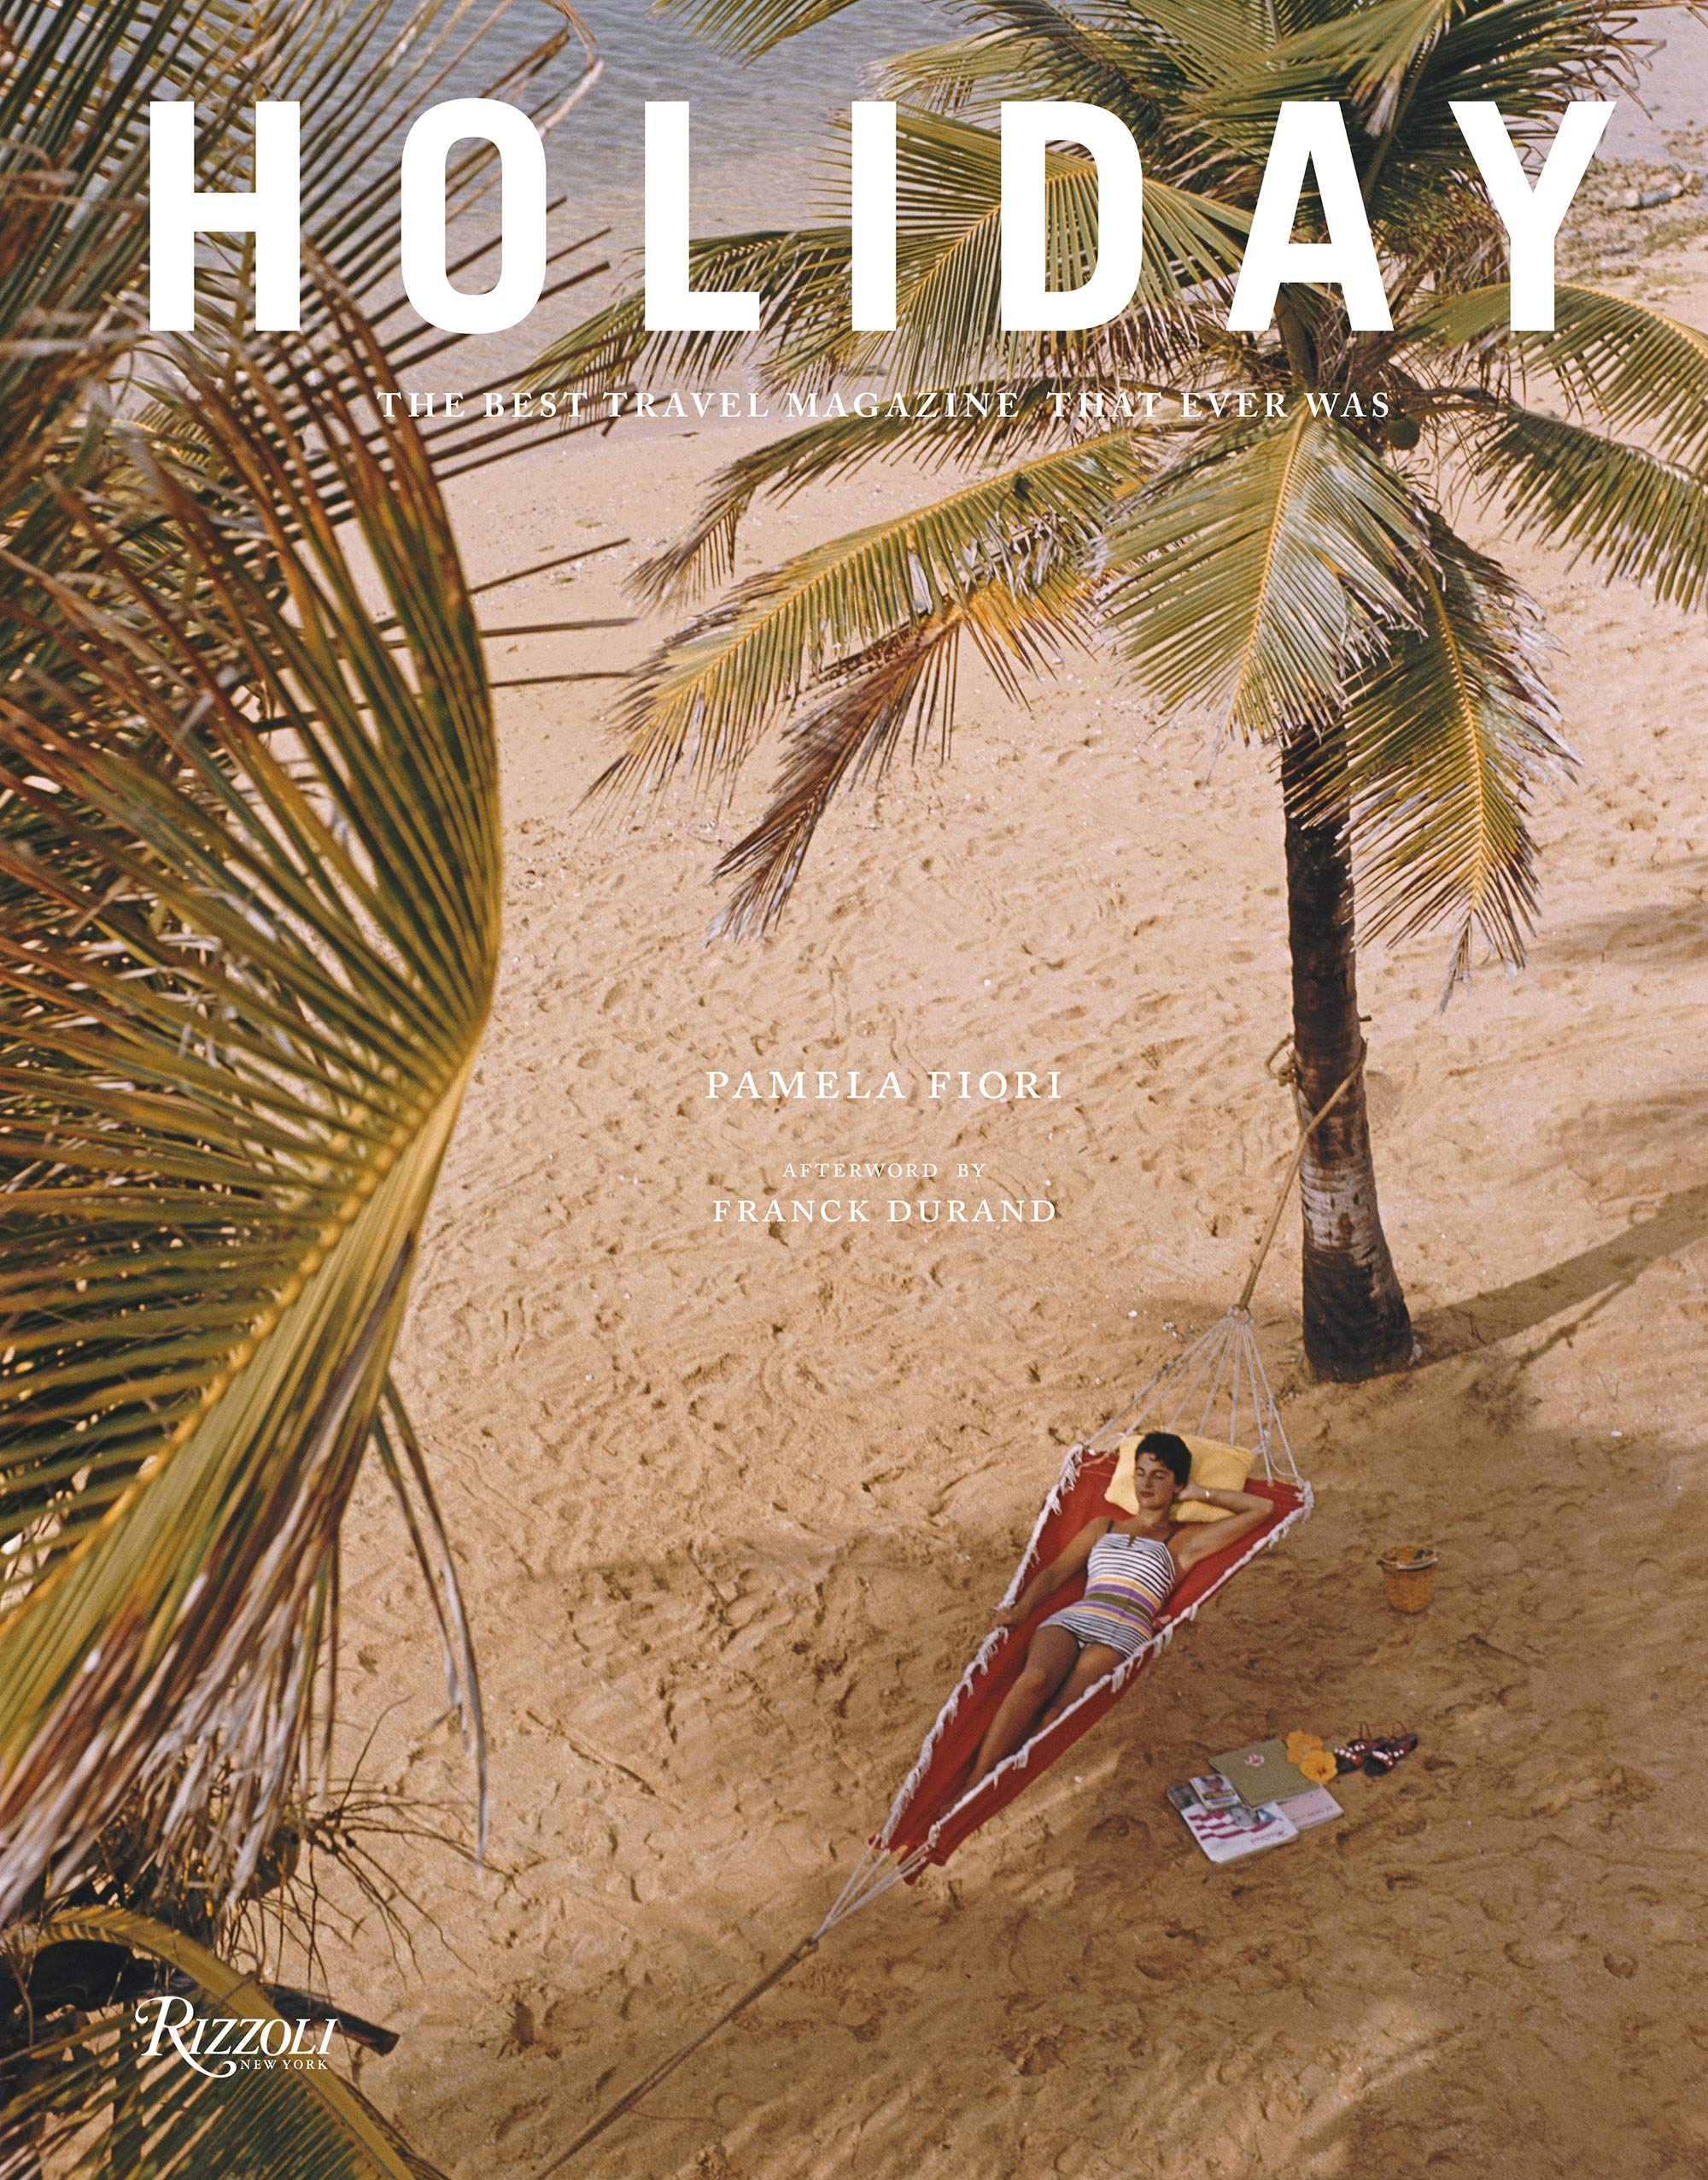 Holiday: The Best Travel Magazine that Ever Was by Rizzoli